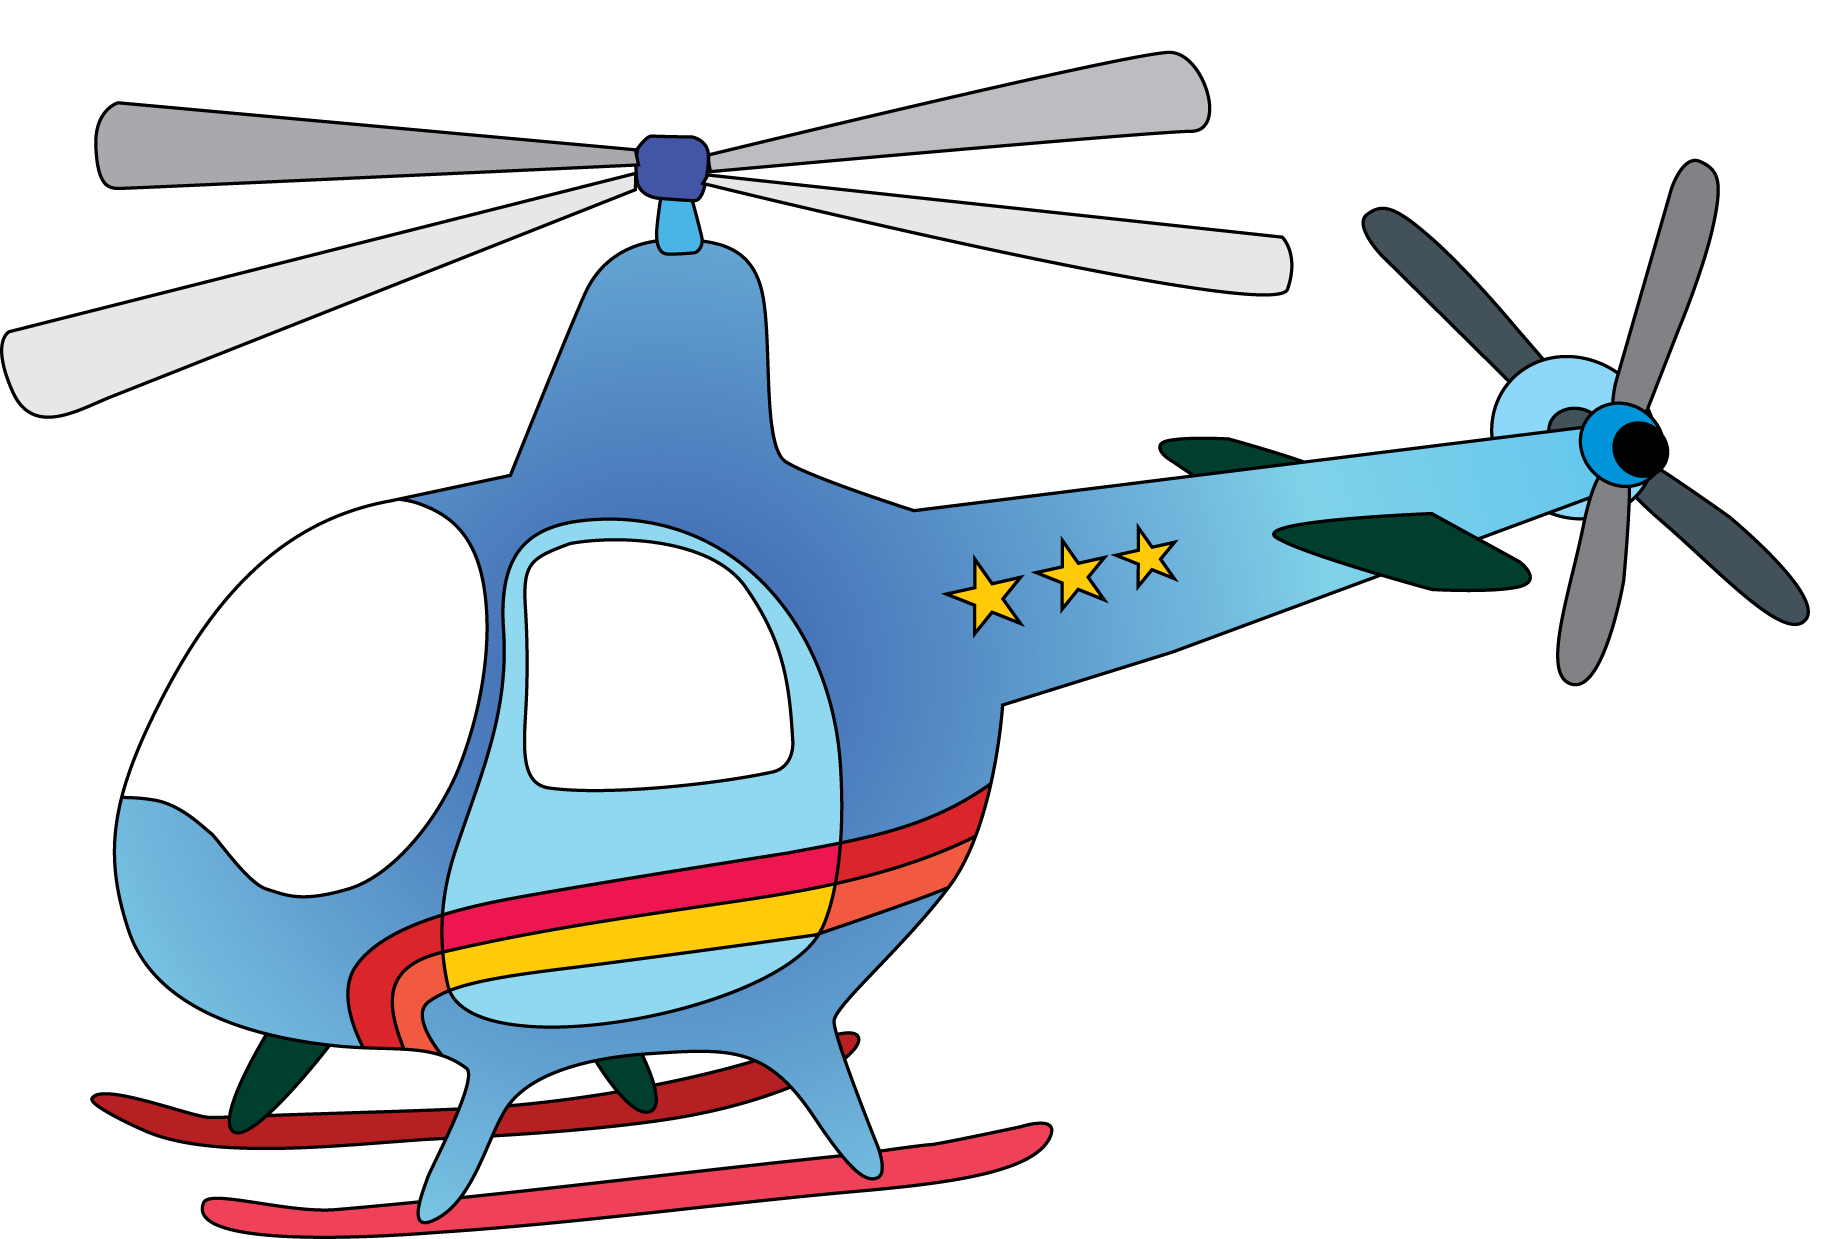 Drawing helicopters kid. Cute airplane clip art